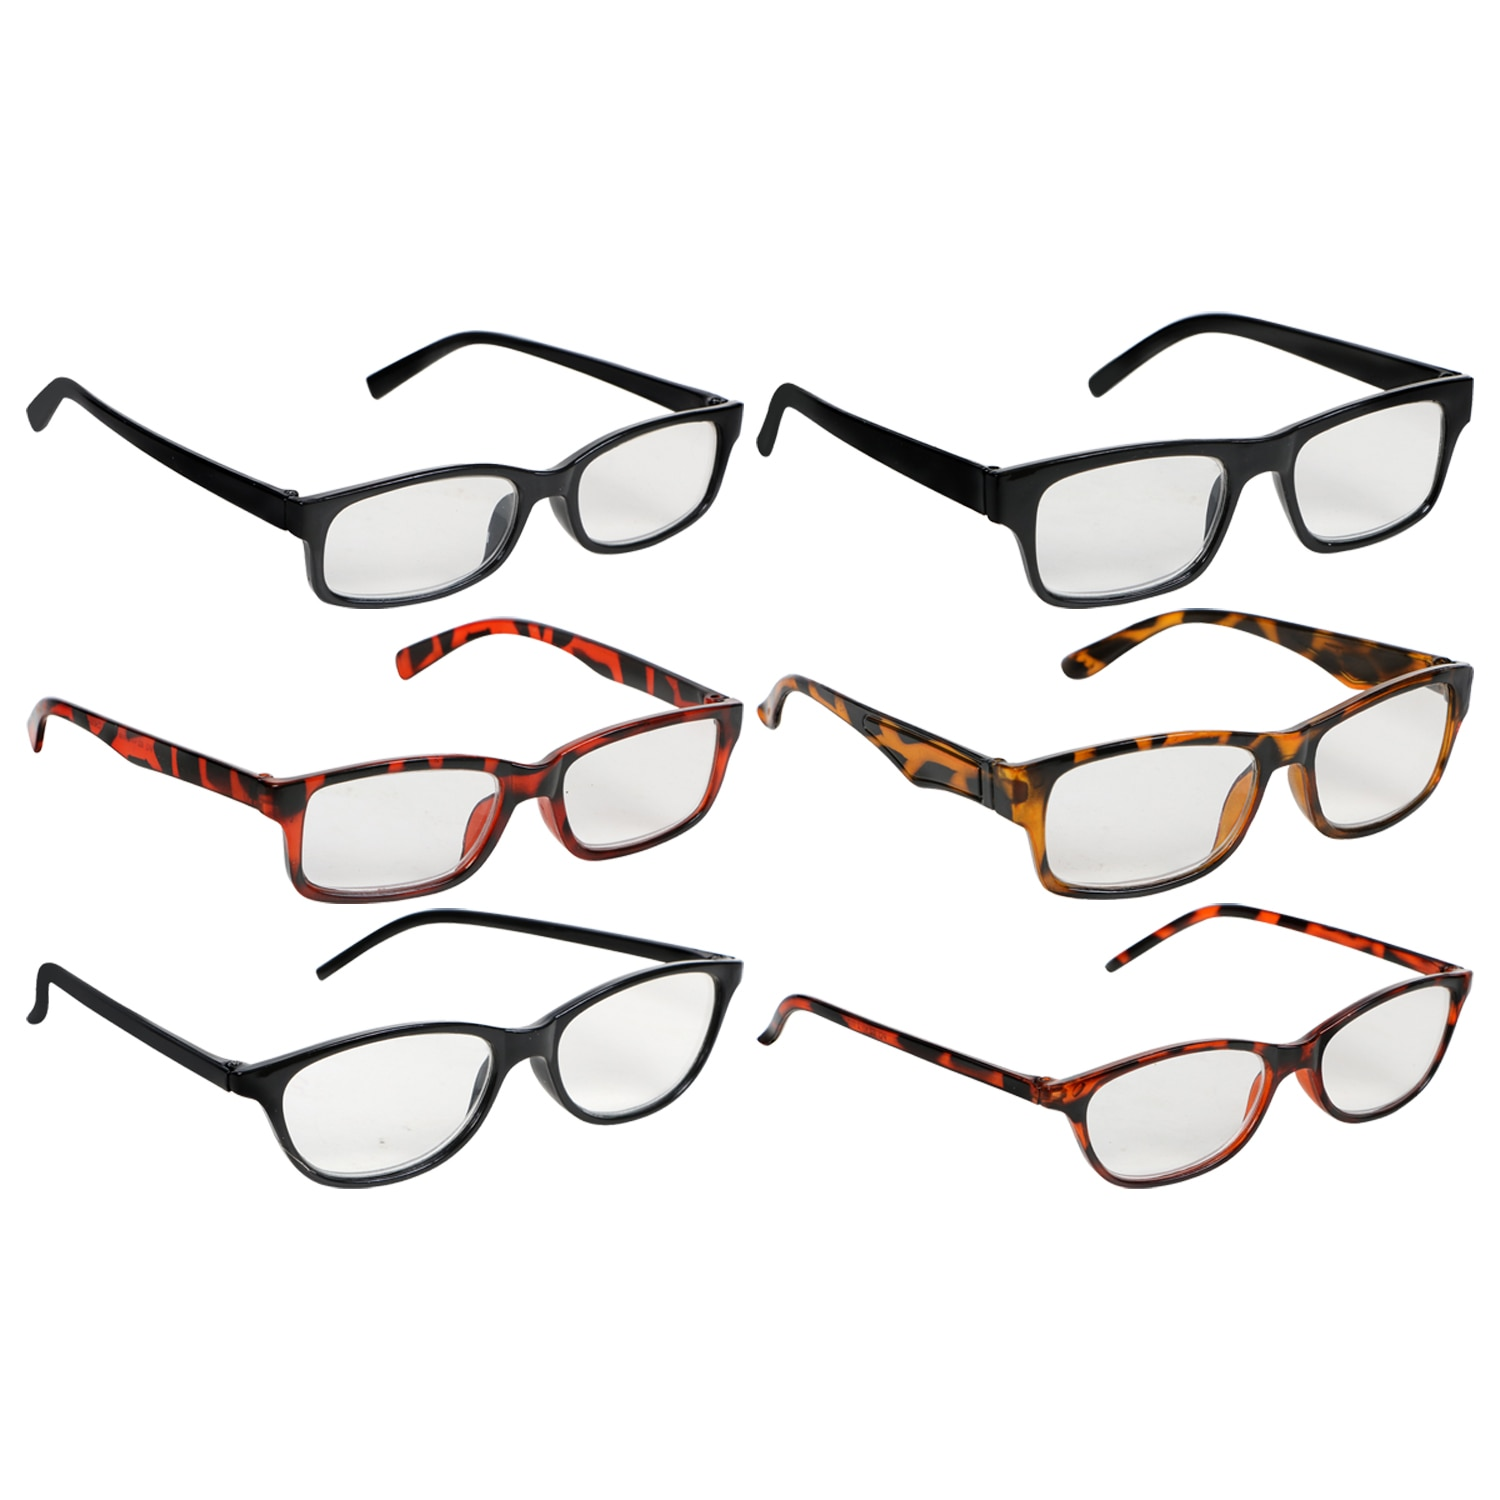 686c6a269f3a Fashion Reading Glasses with +2.75 Diopters